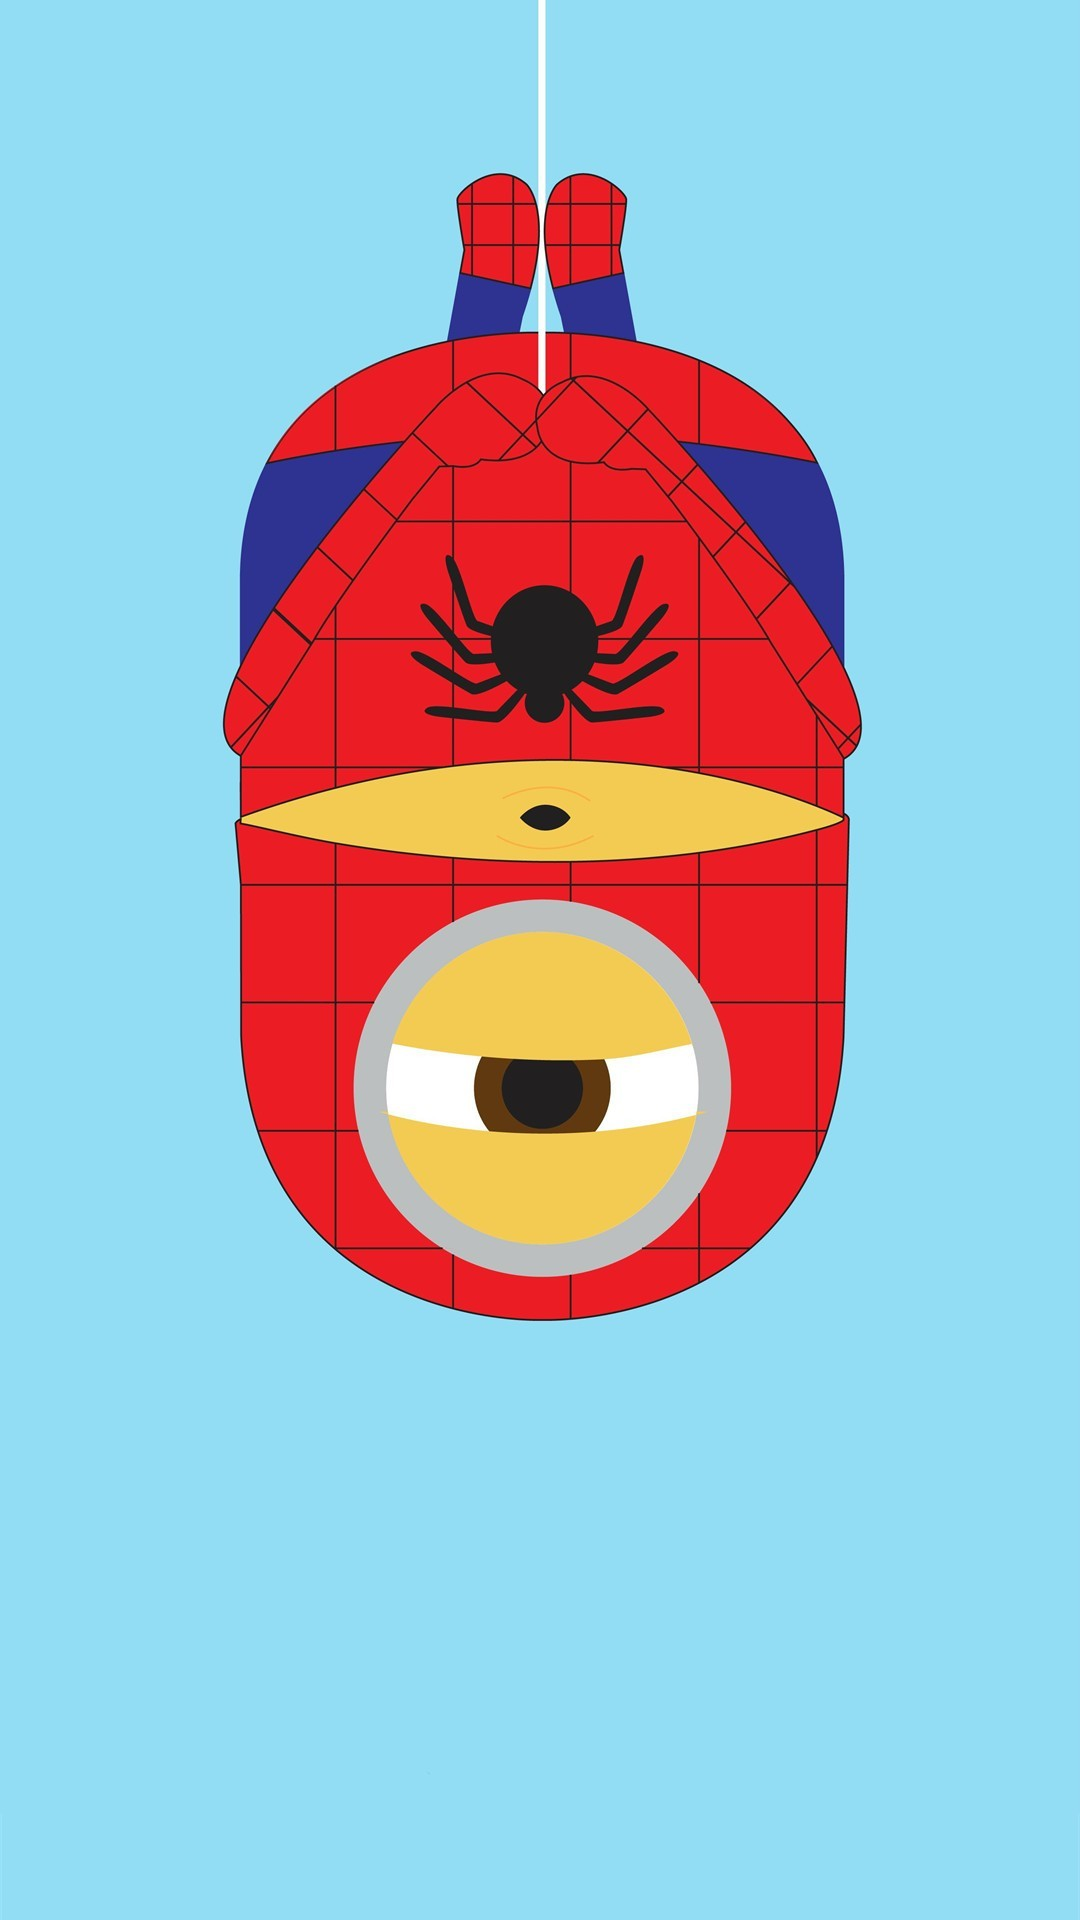 Wallpaper Weekends: Minions Marvel Superheroes for Your iPhone …